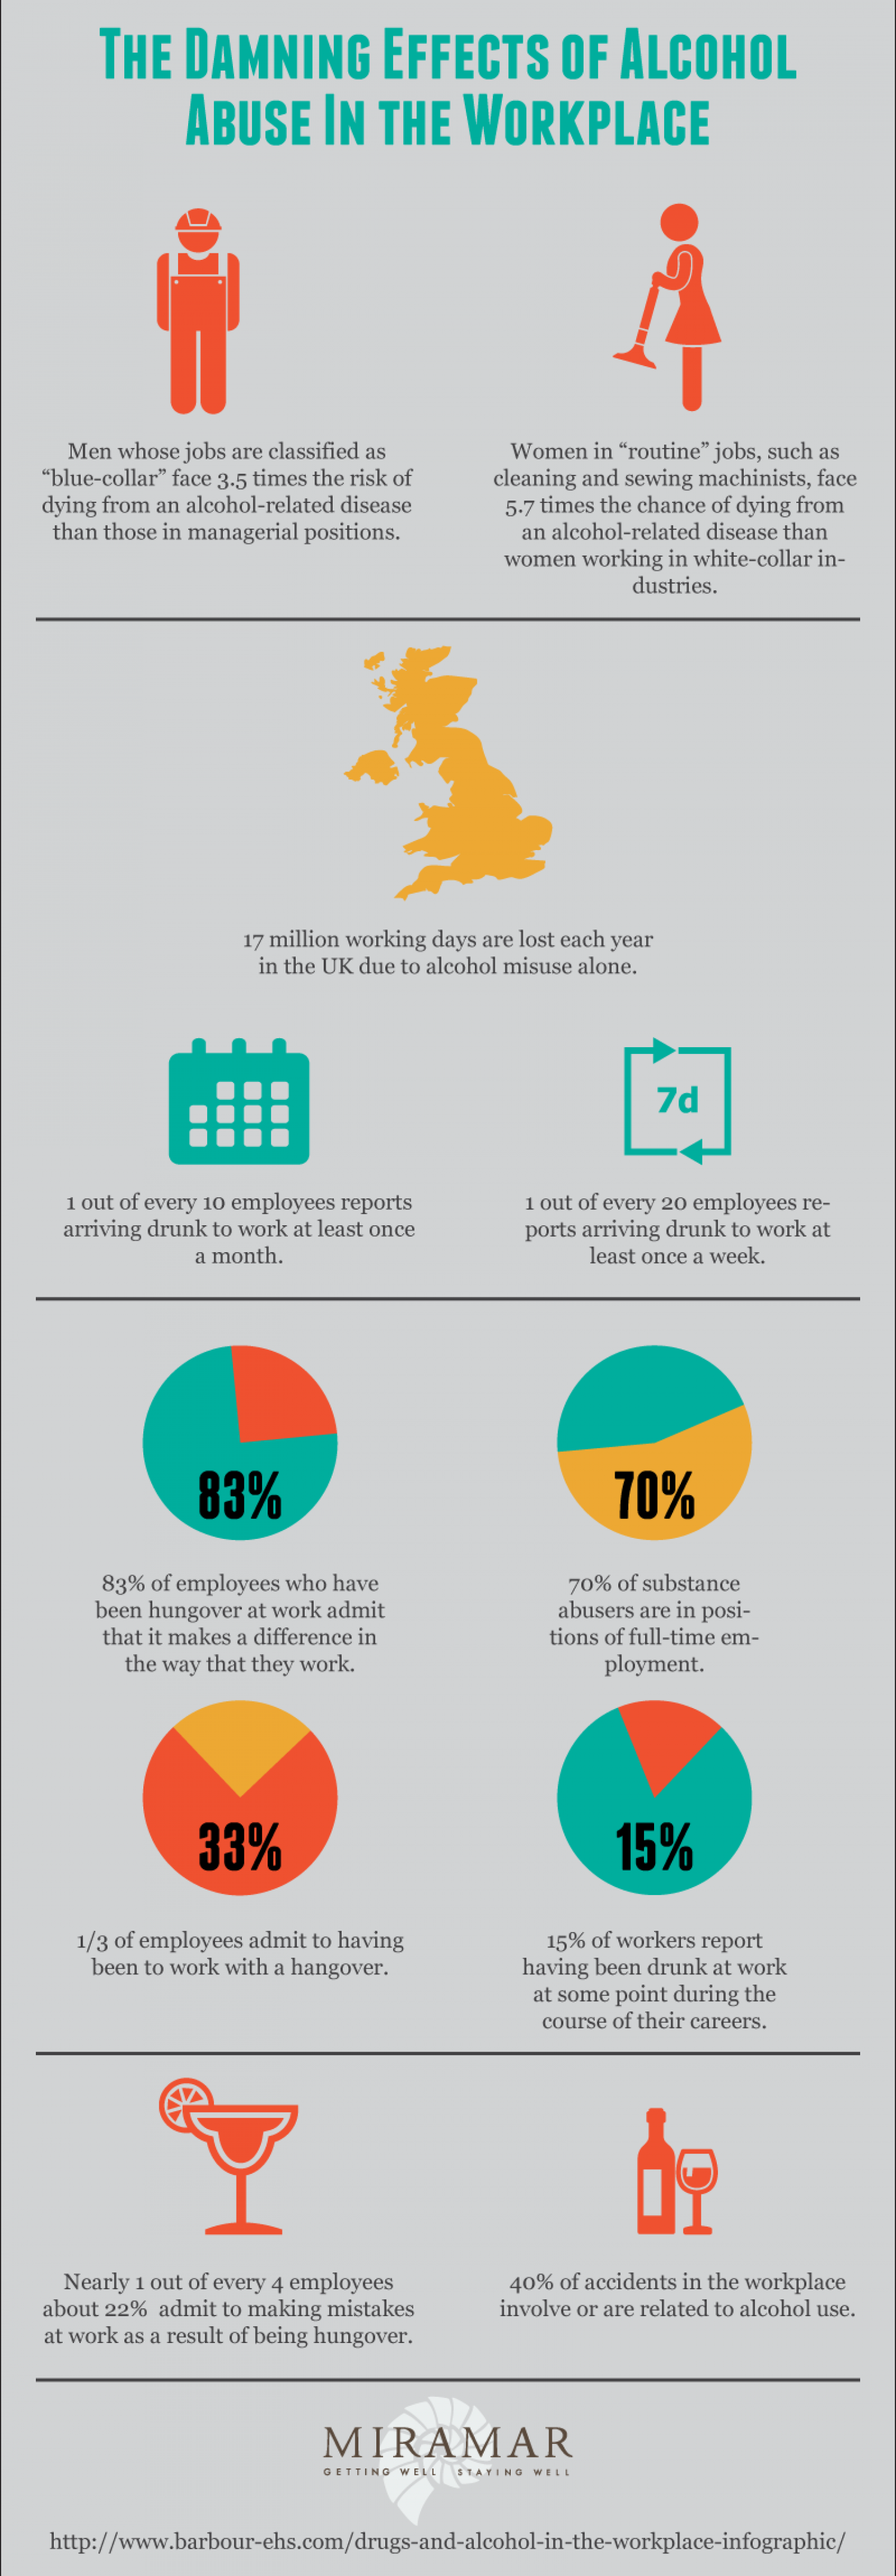 The Damning Effects of Alcohol In the Workplace Infographic